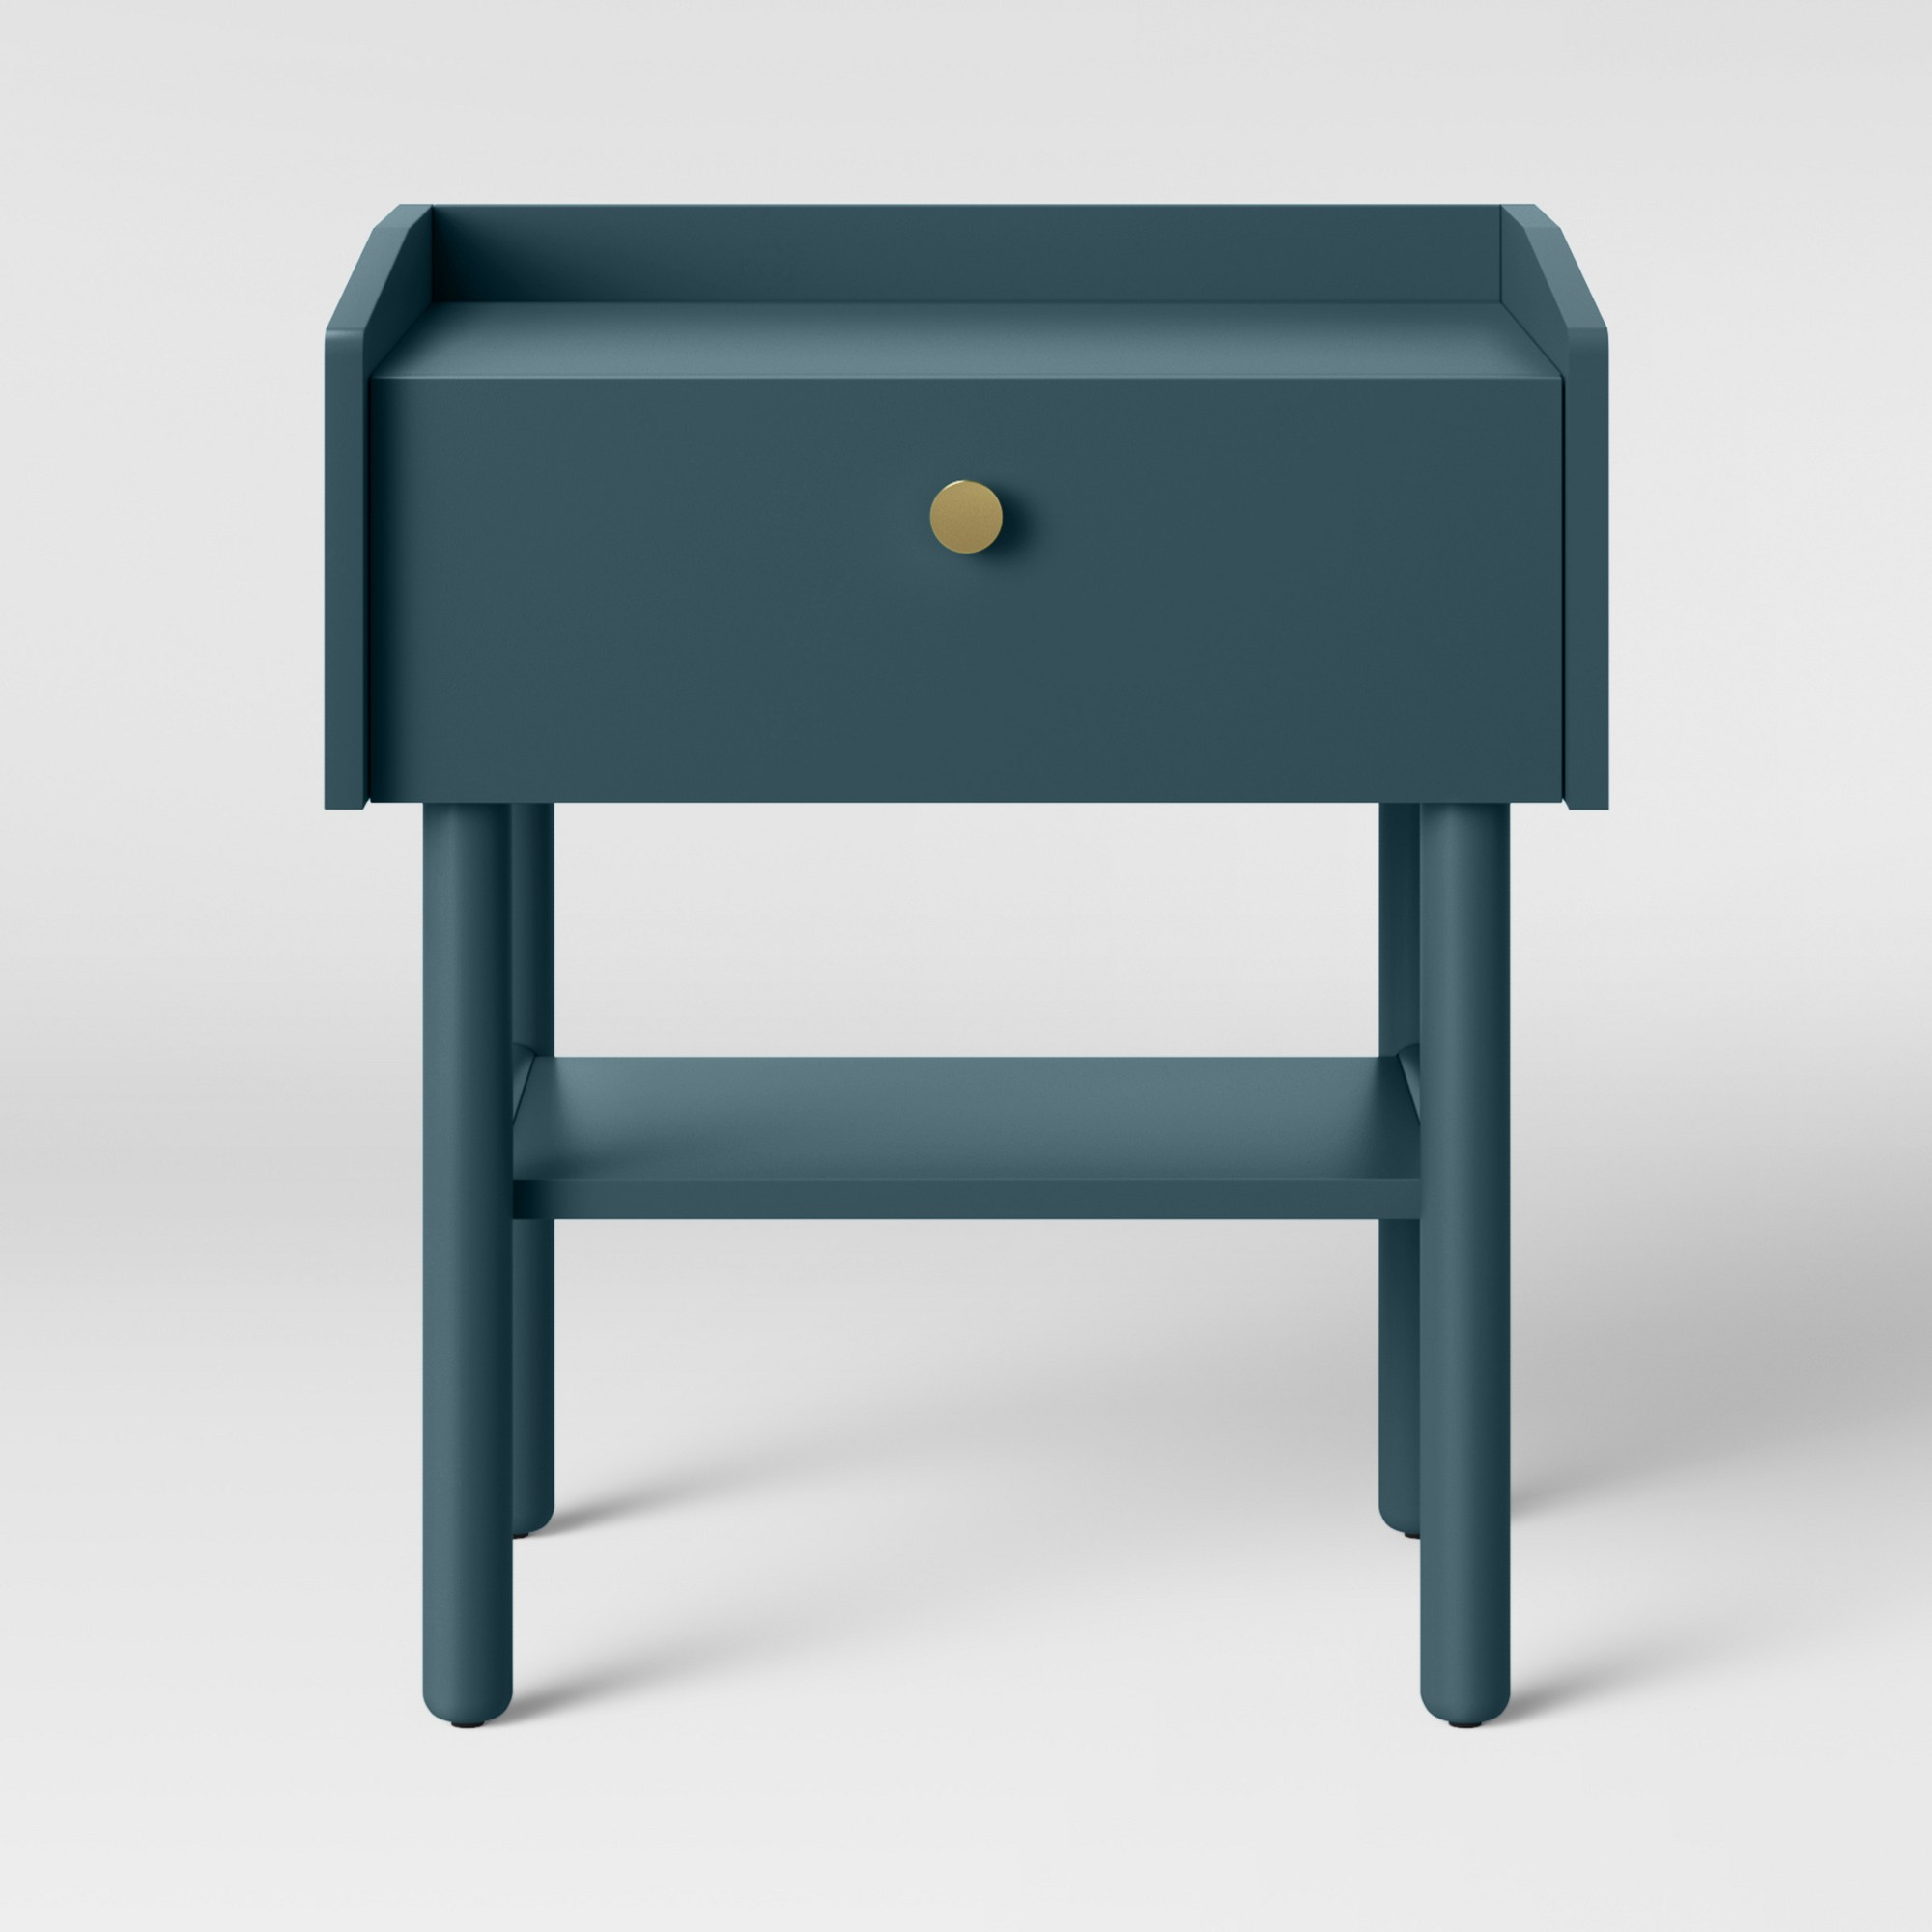 wiley side table blue project products bedroom target accent painting laminate cabinets small barbecue grill concrete outdoor setting retail lighting decor kidney shaped cocktail